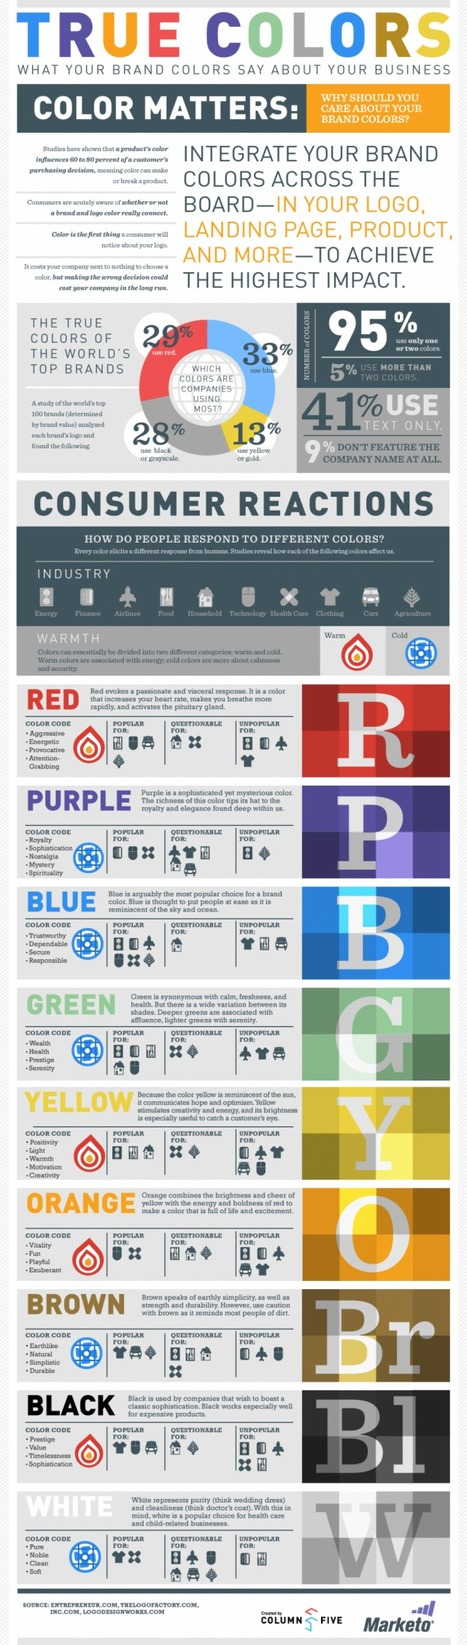 How Your Brand Colors Impact Your Audience | Creativity as changing tool | Scoop.it